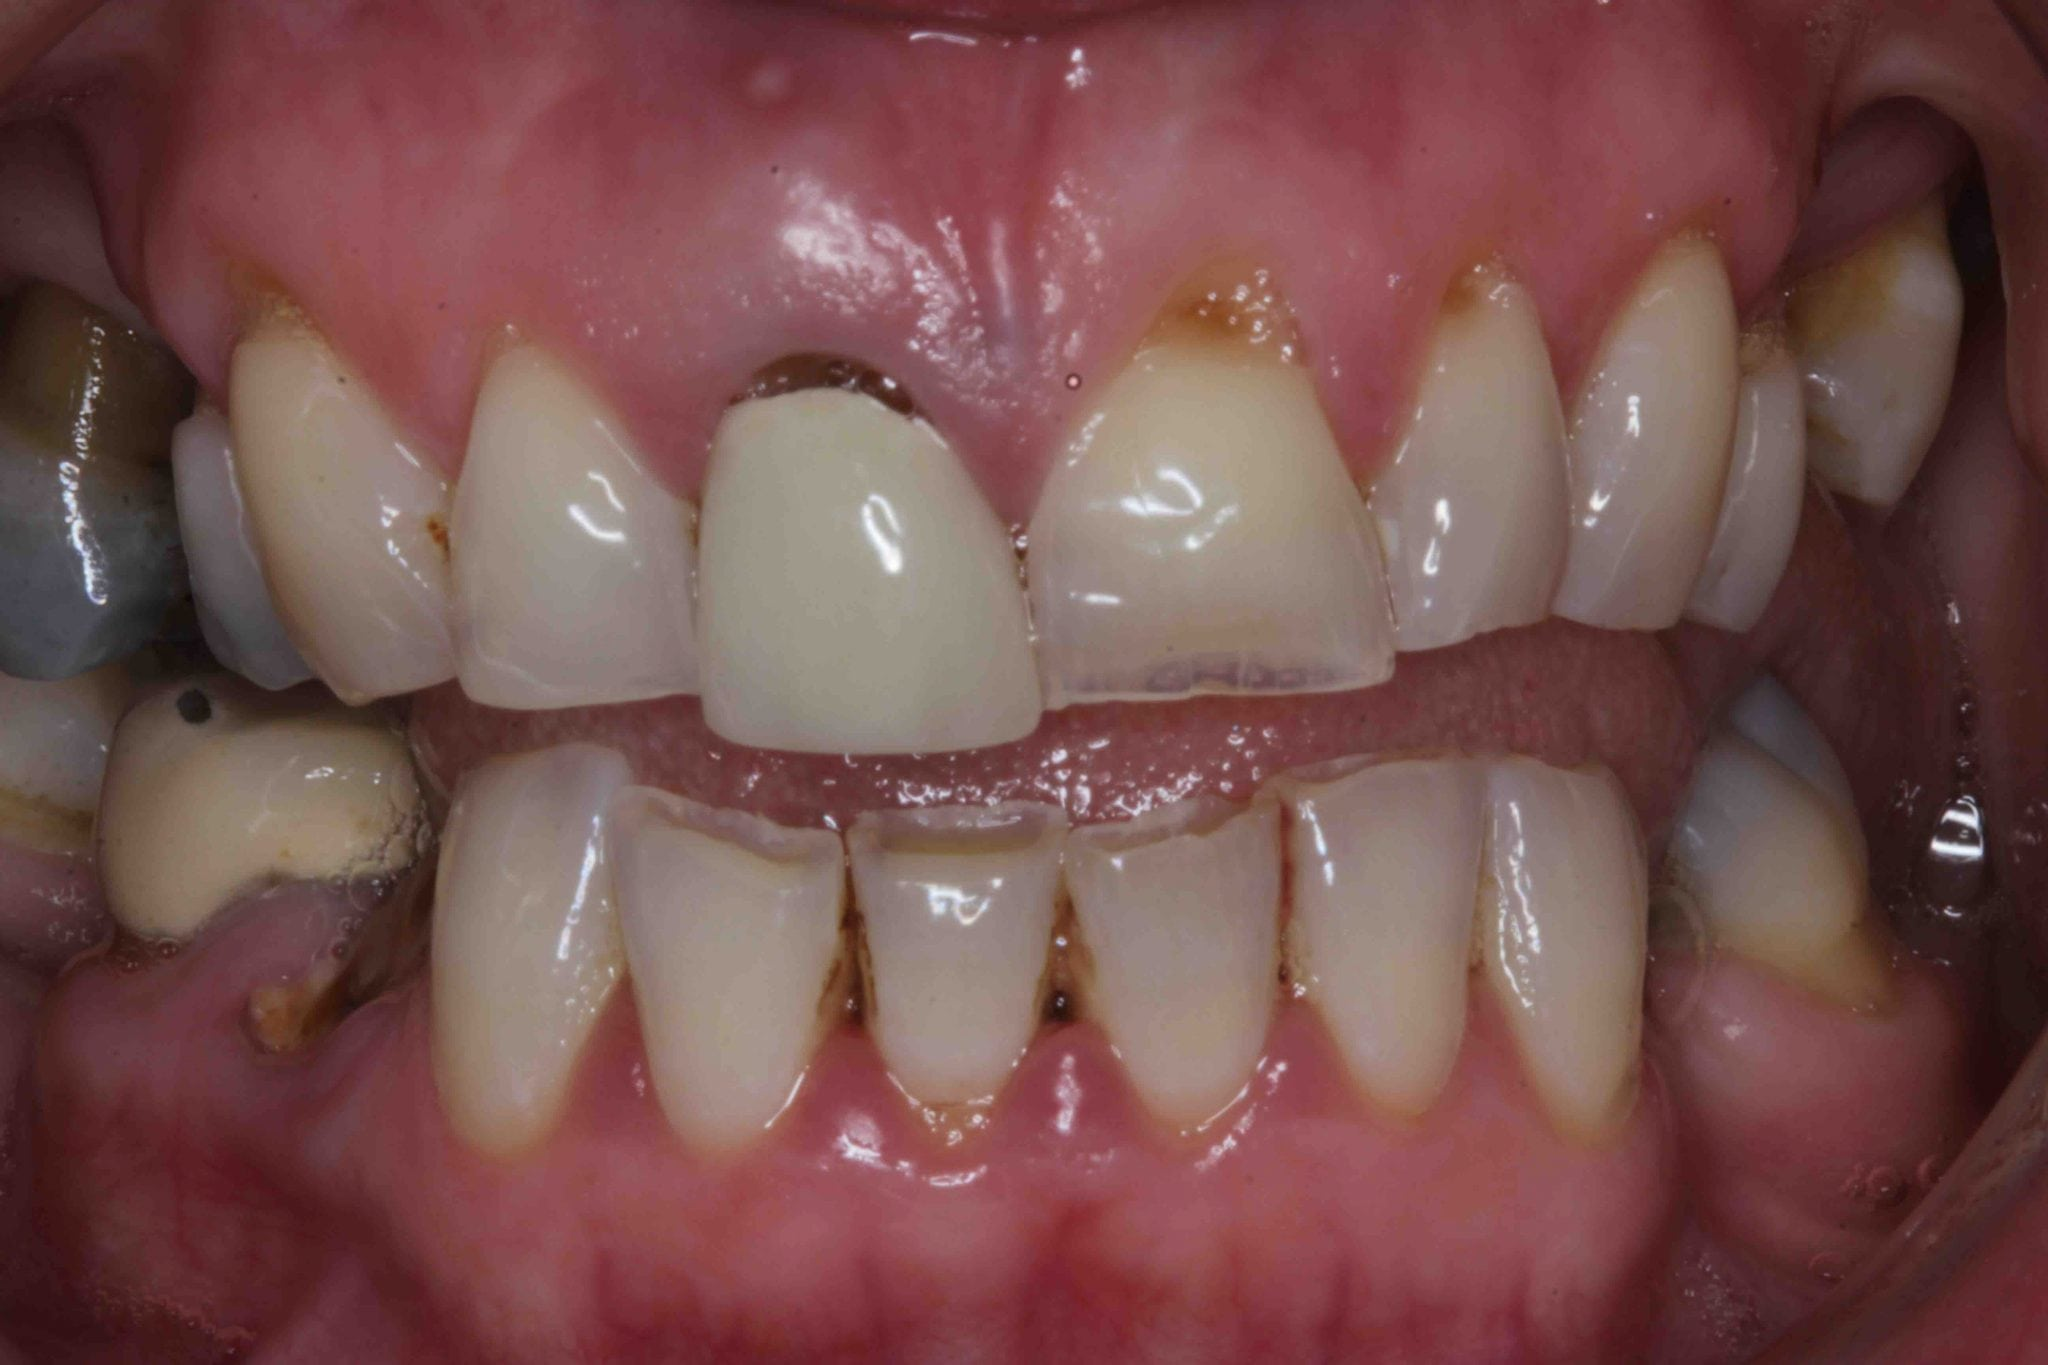 fractured tooth dental implant treatment photos